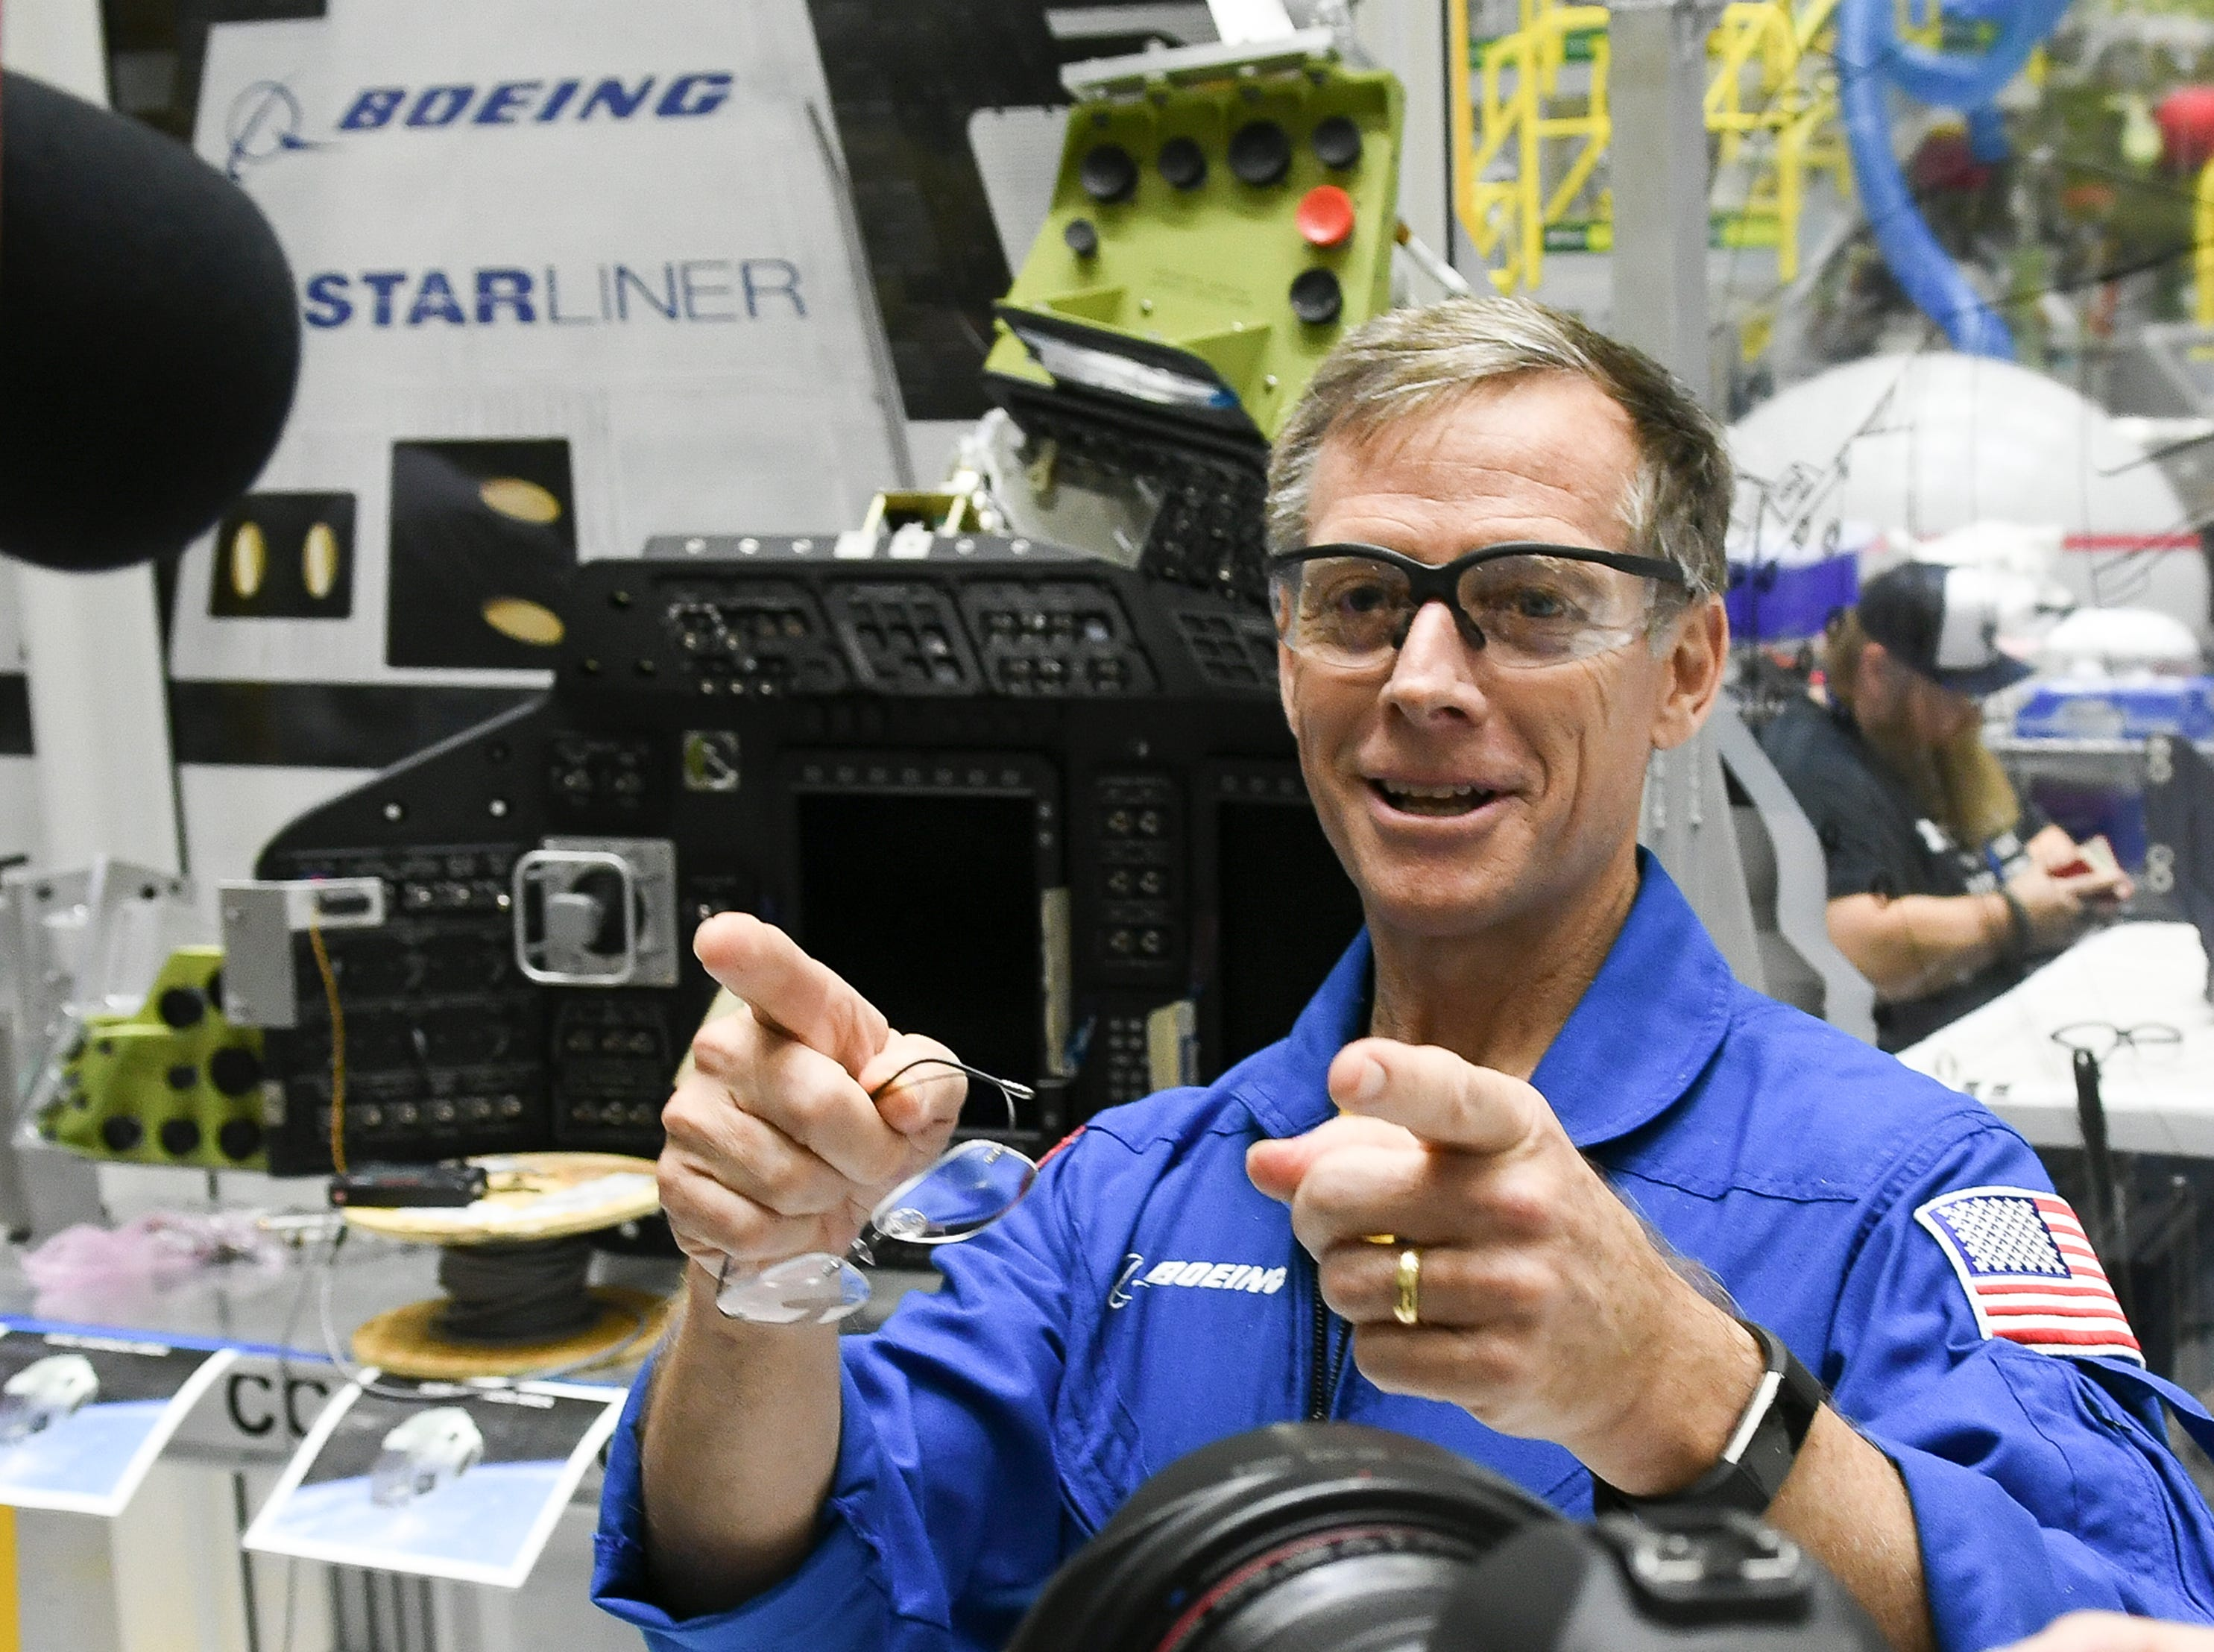 Astronaut Chris Ferguson talks about the features of the Starliner crew test vehicle under construction in the Boeing  manufacturing facility at Kennedy Space Center.